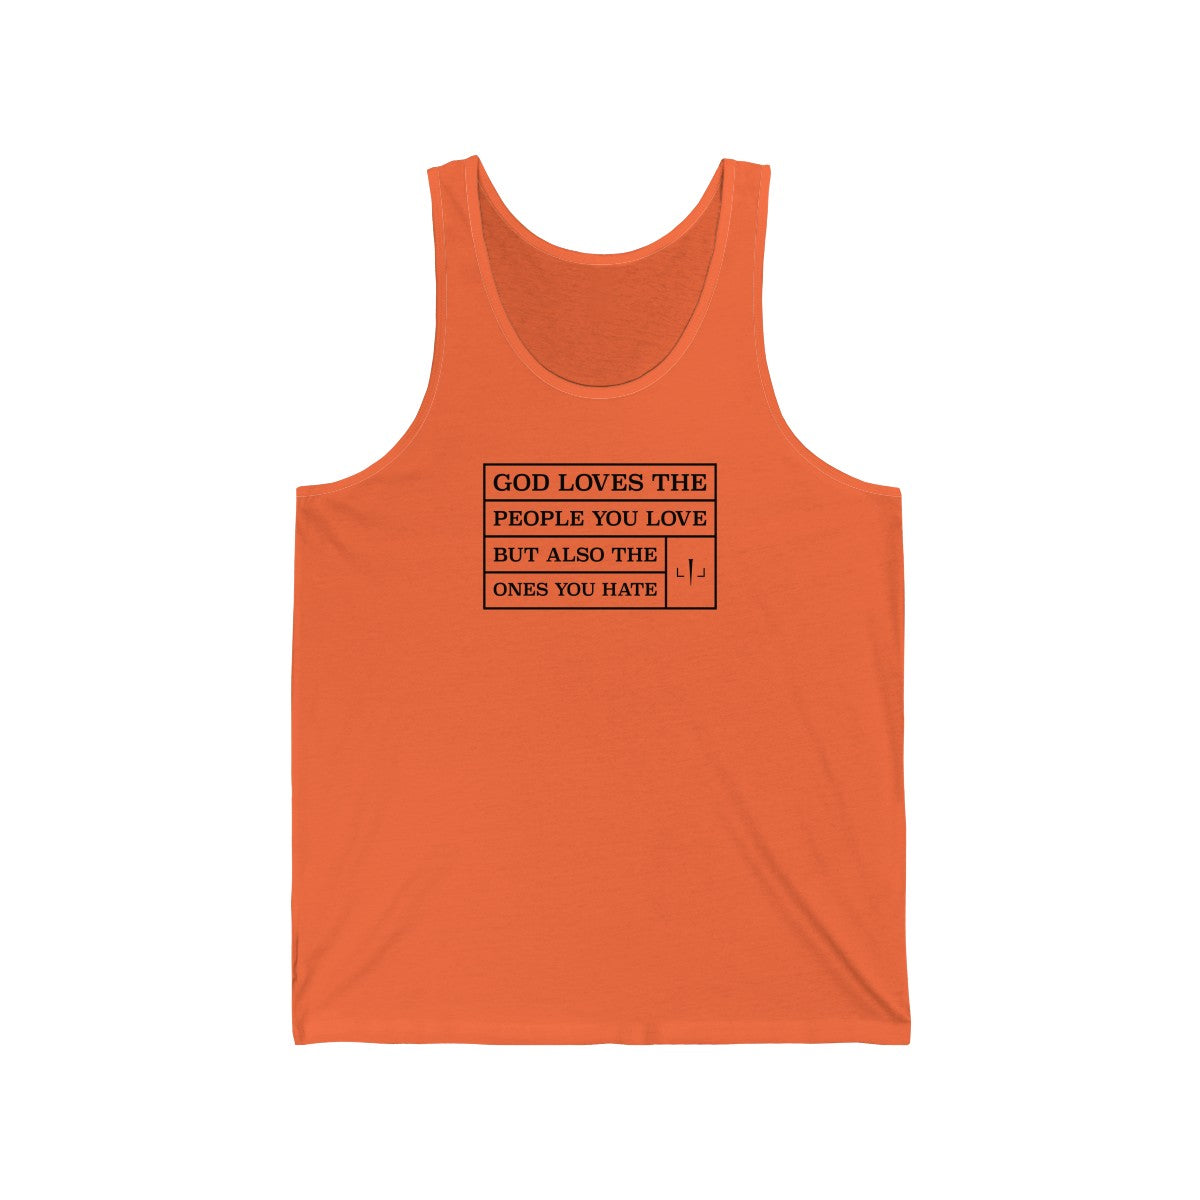 God Loves The People You Love But Also The Ones You Hate Unisex Jersey Tank